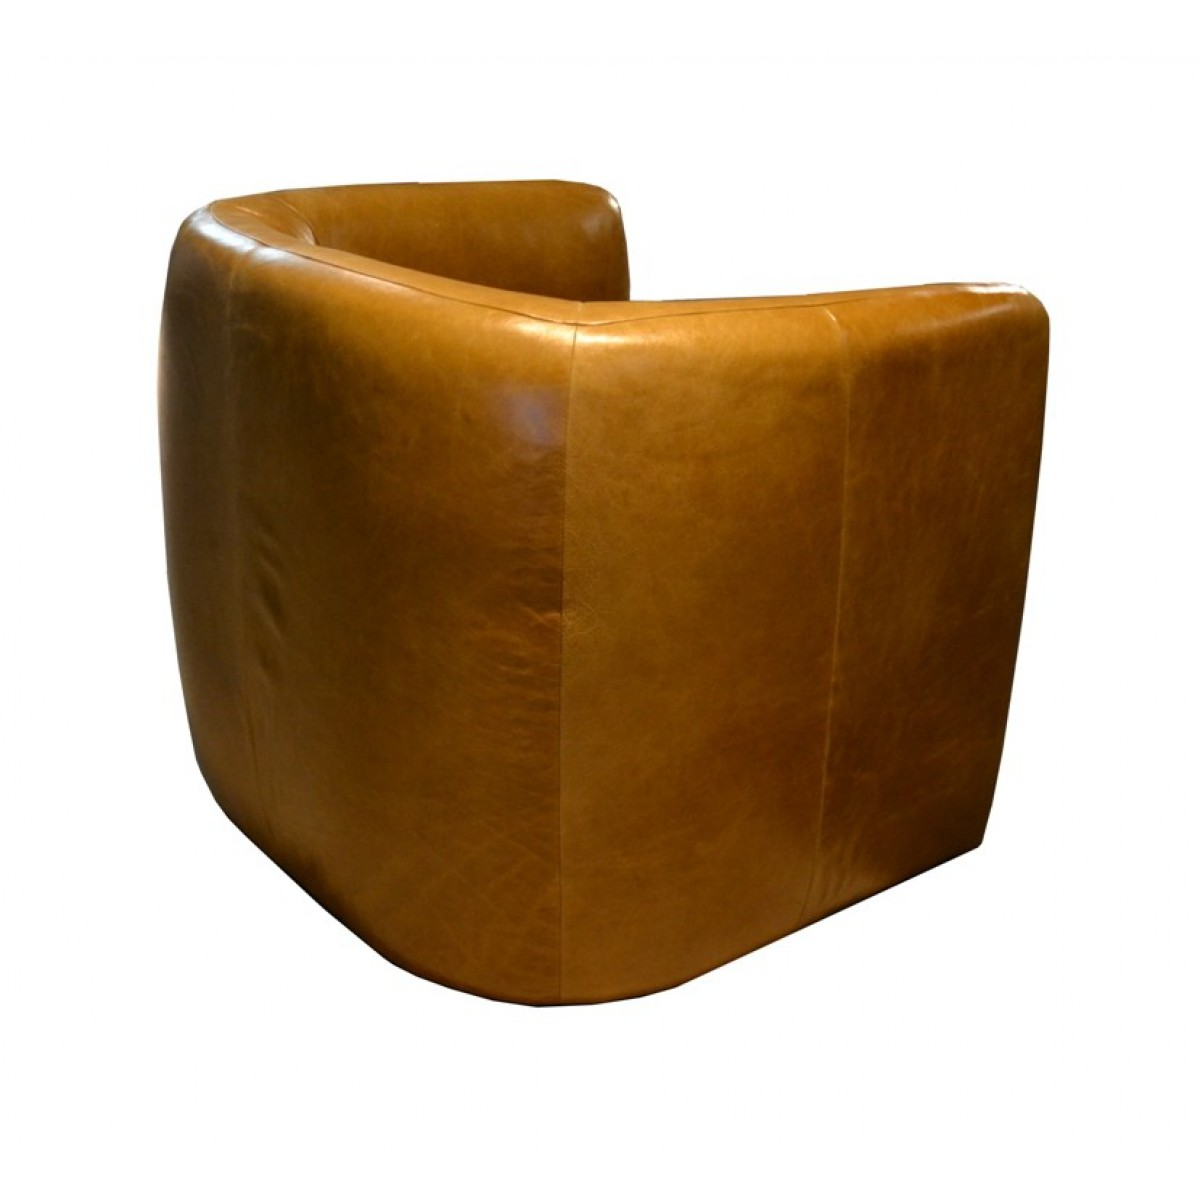 fauteuil_trias_tribeca_leder_cognac_dasilva_tabacco_easy_sofa_tom_club_collection_back